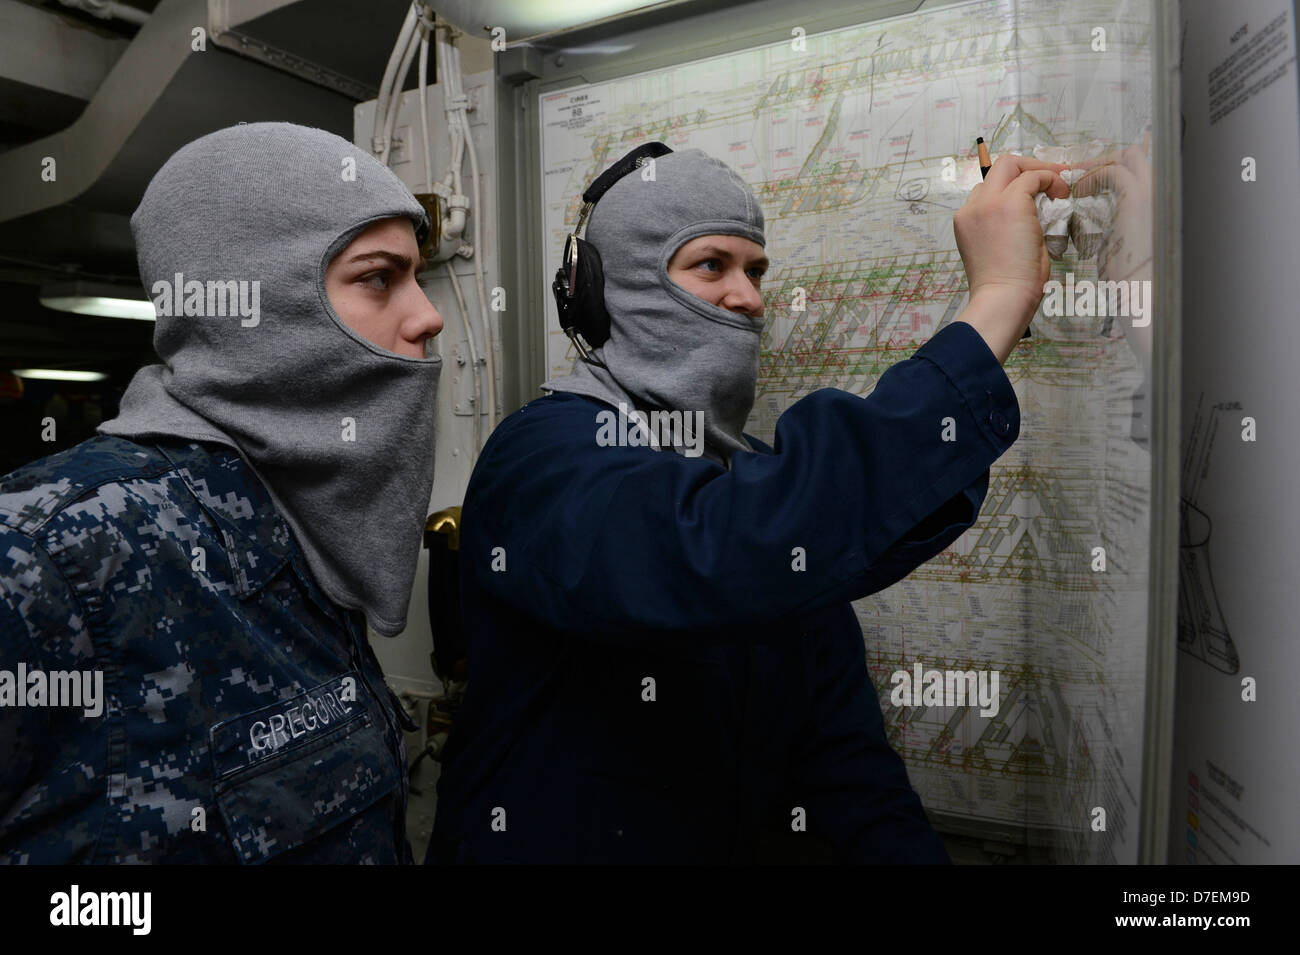 Sailors track casualties during a drill at sea. - Stock Image